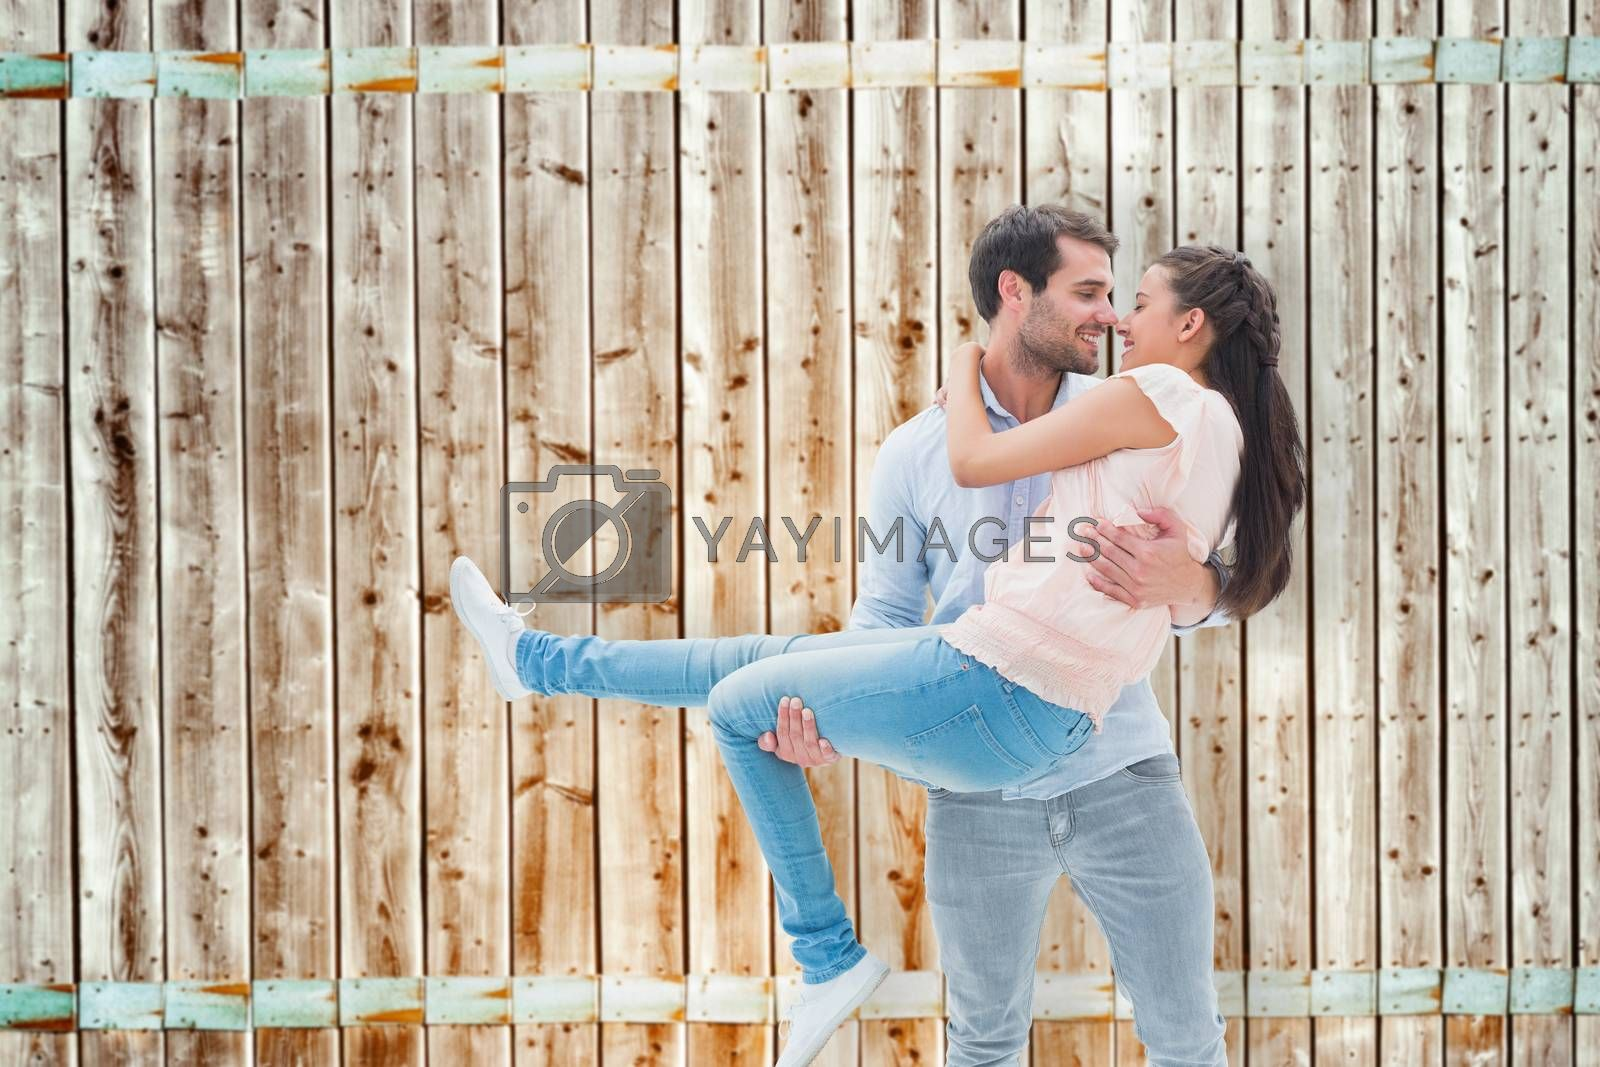 Attractive young couple having fun against wooden background in pale wood